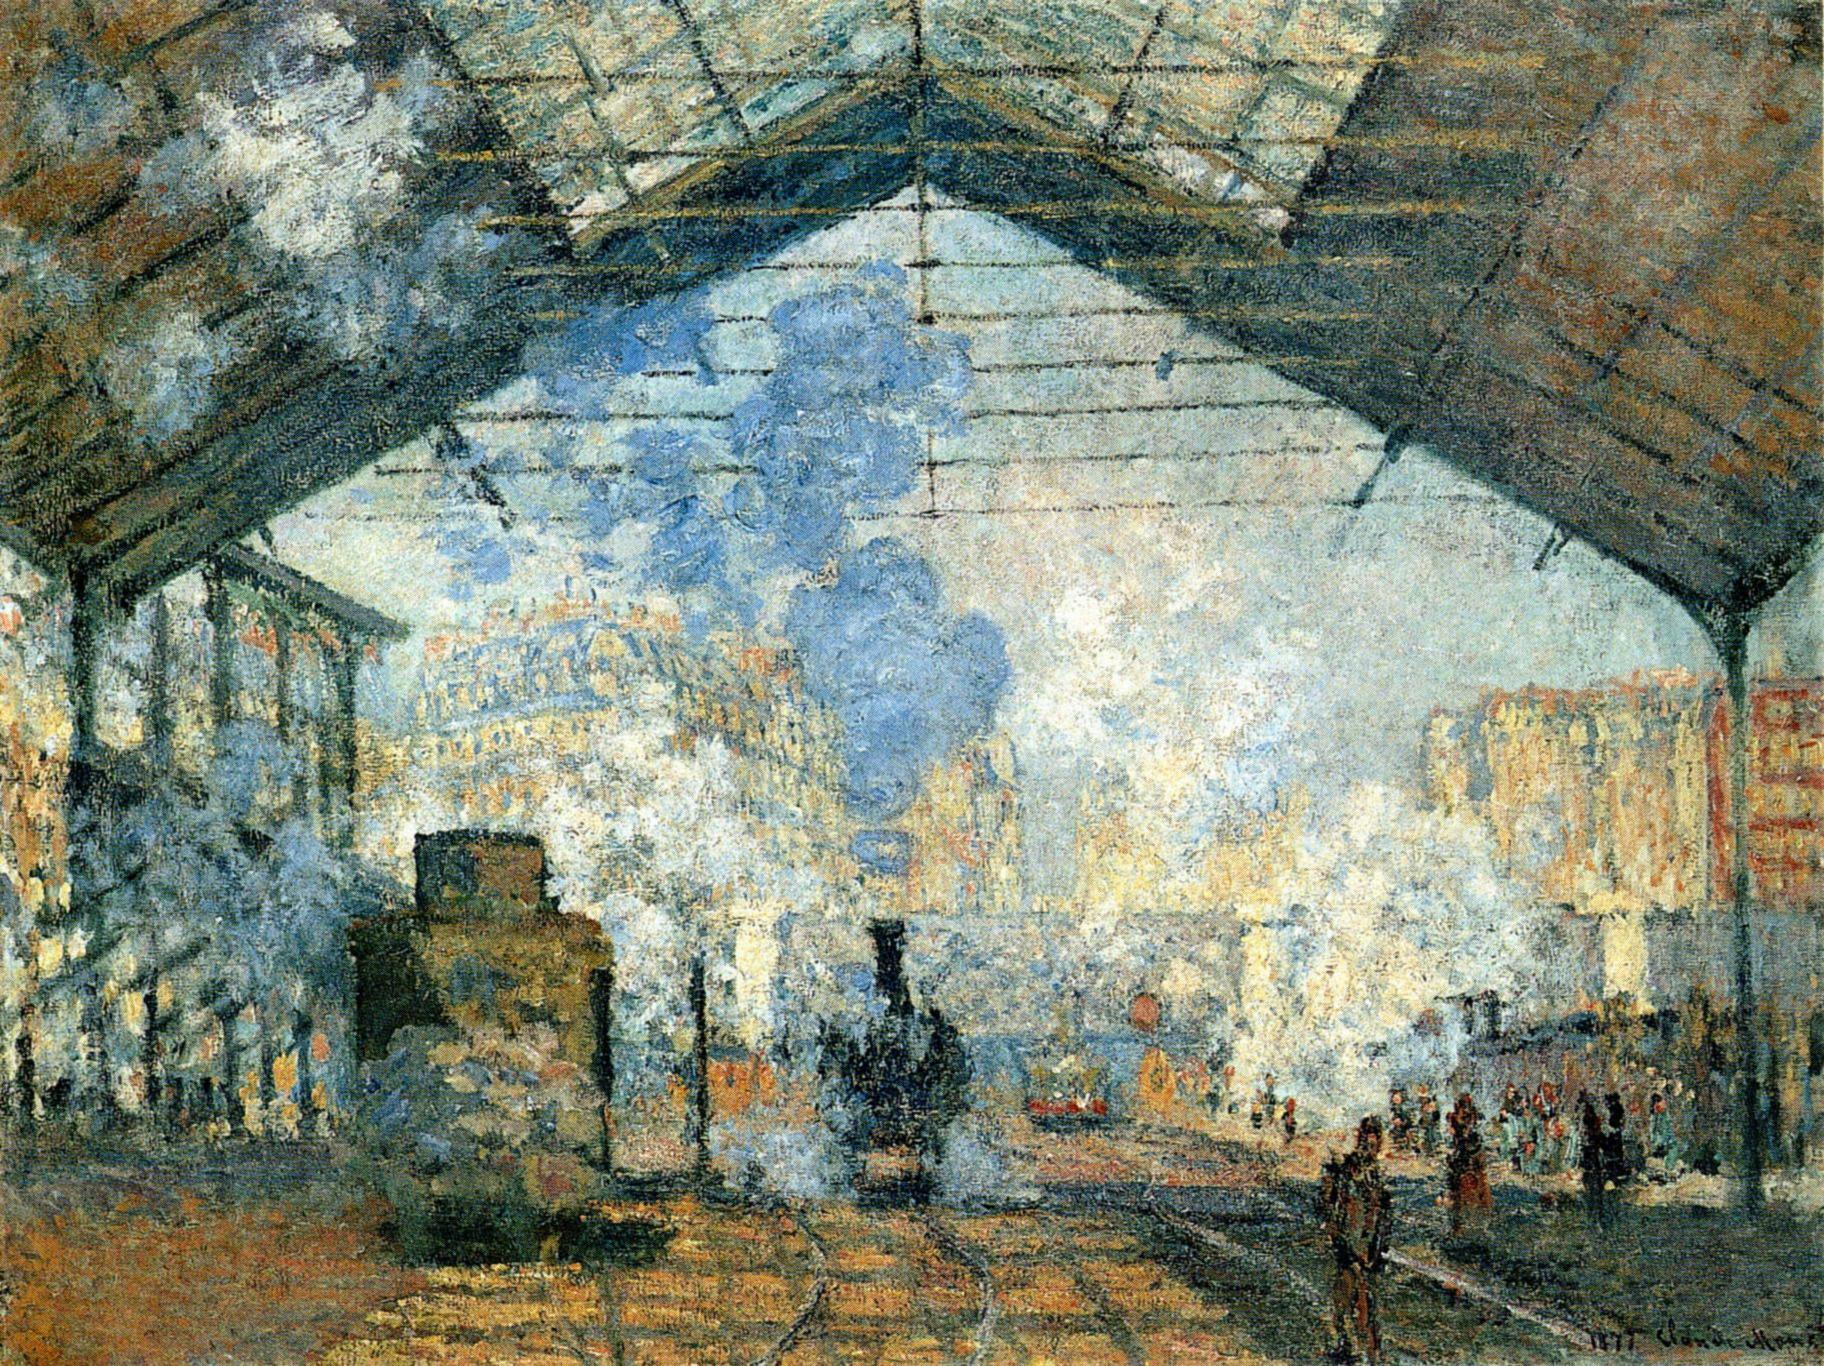 http://upload.wikimedia.org/wikipedia/commons/1/1f/La_Gare_Saint-Lazare.jpg